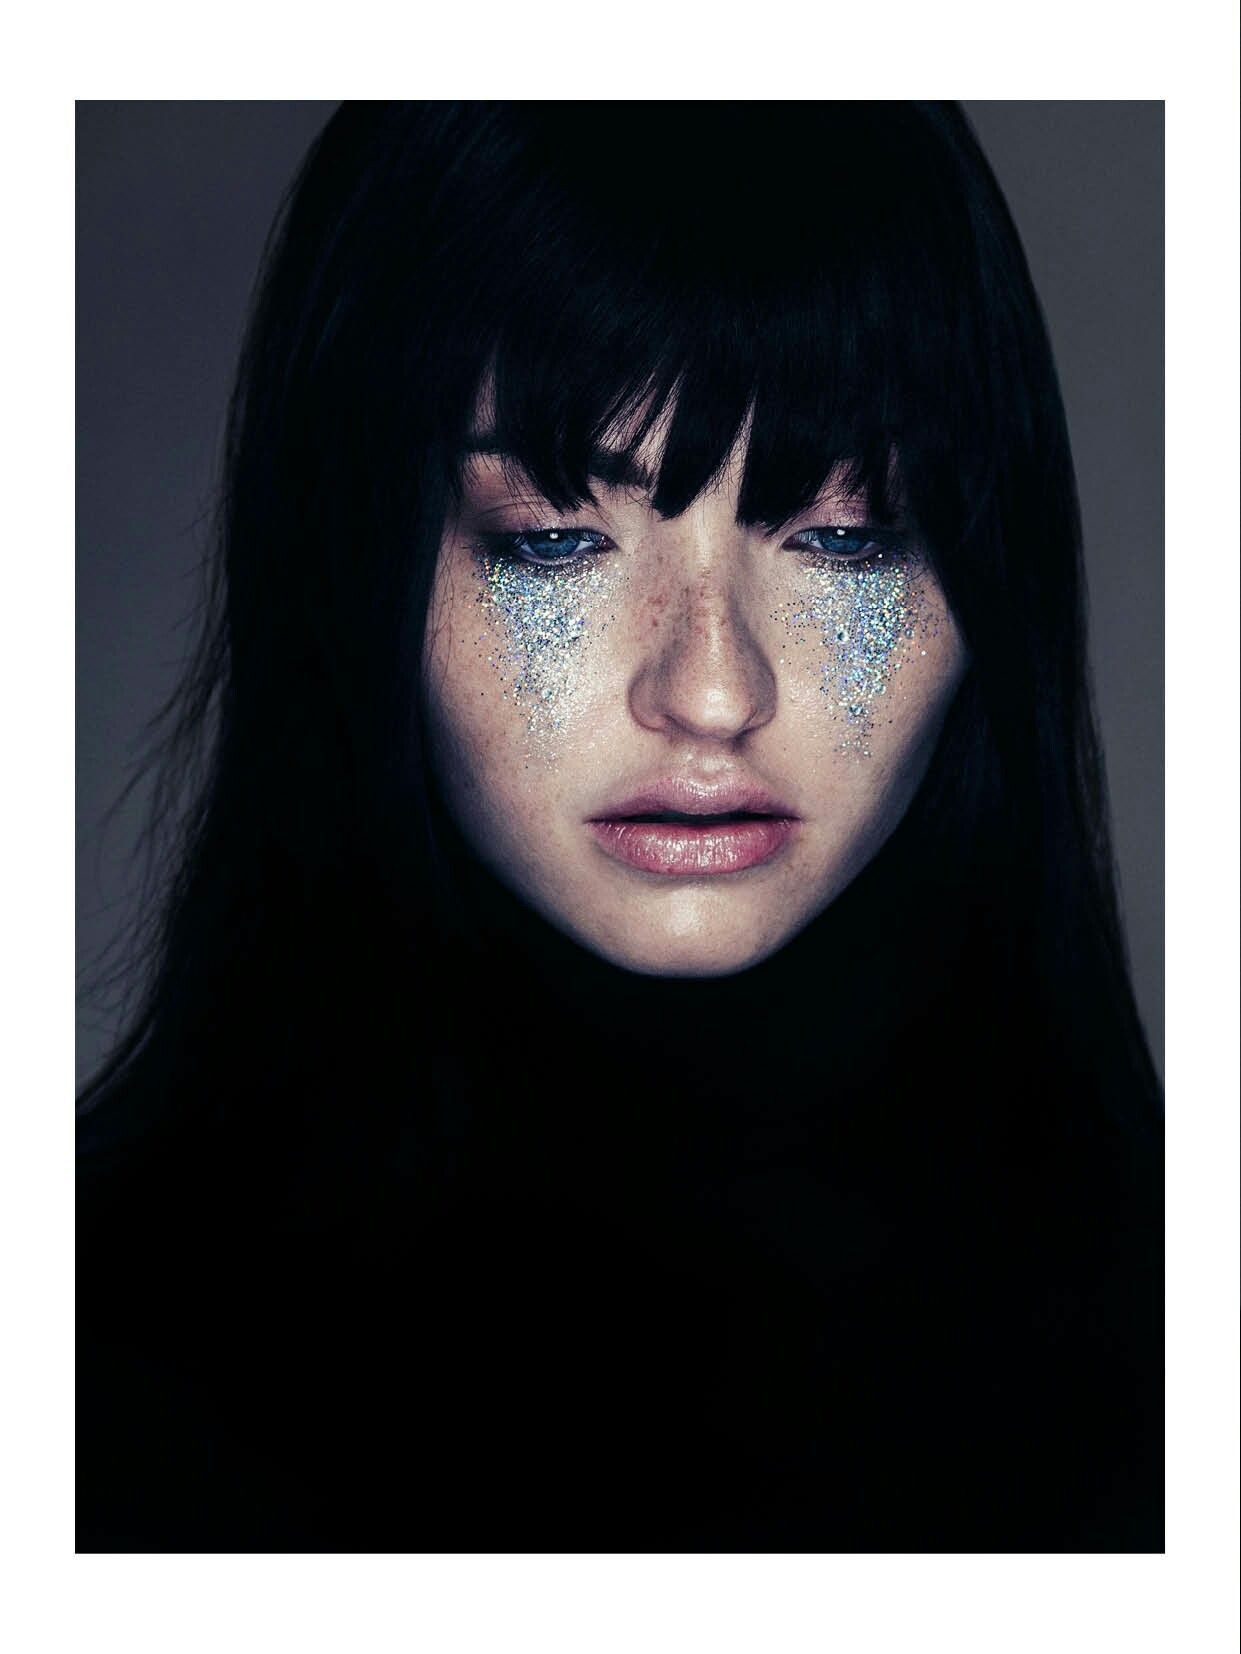 Tears of glitter black hair pale skin blue eyes  Moda